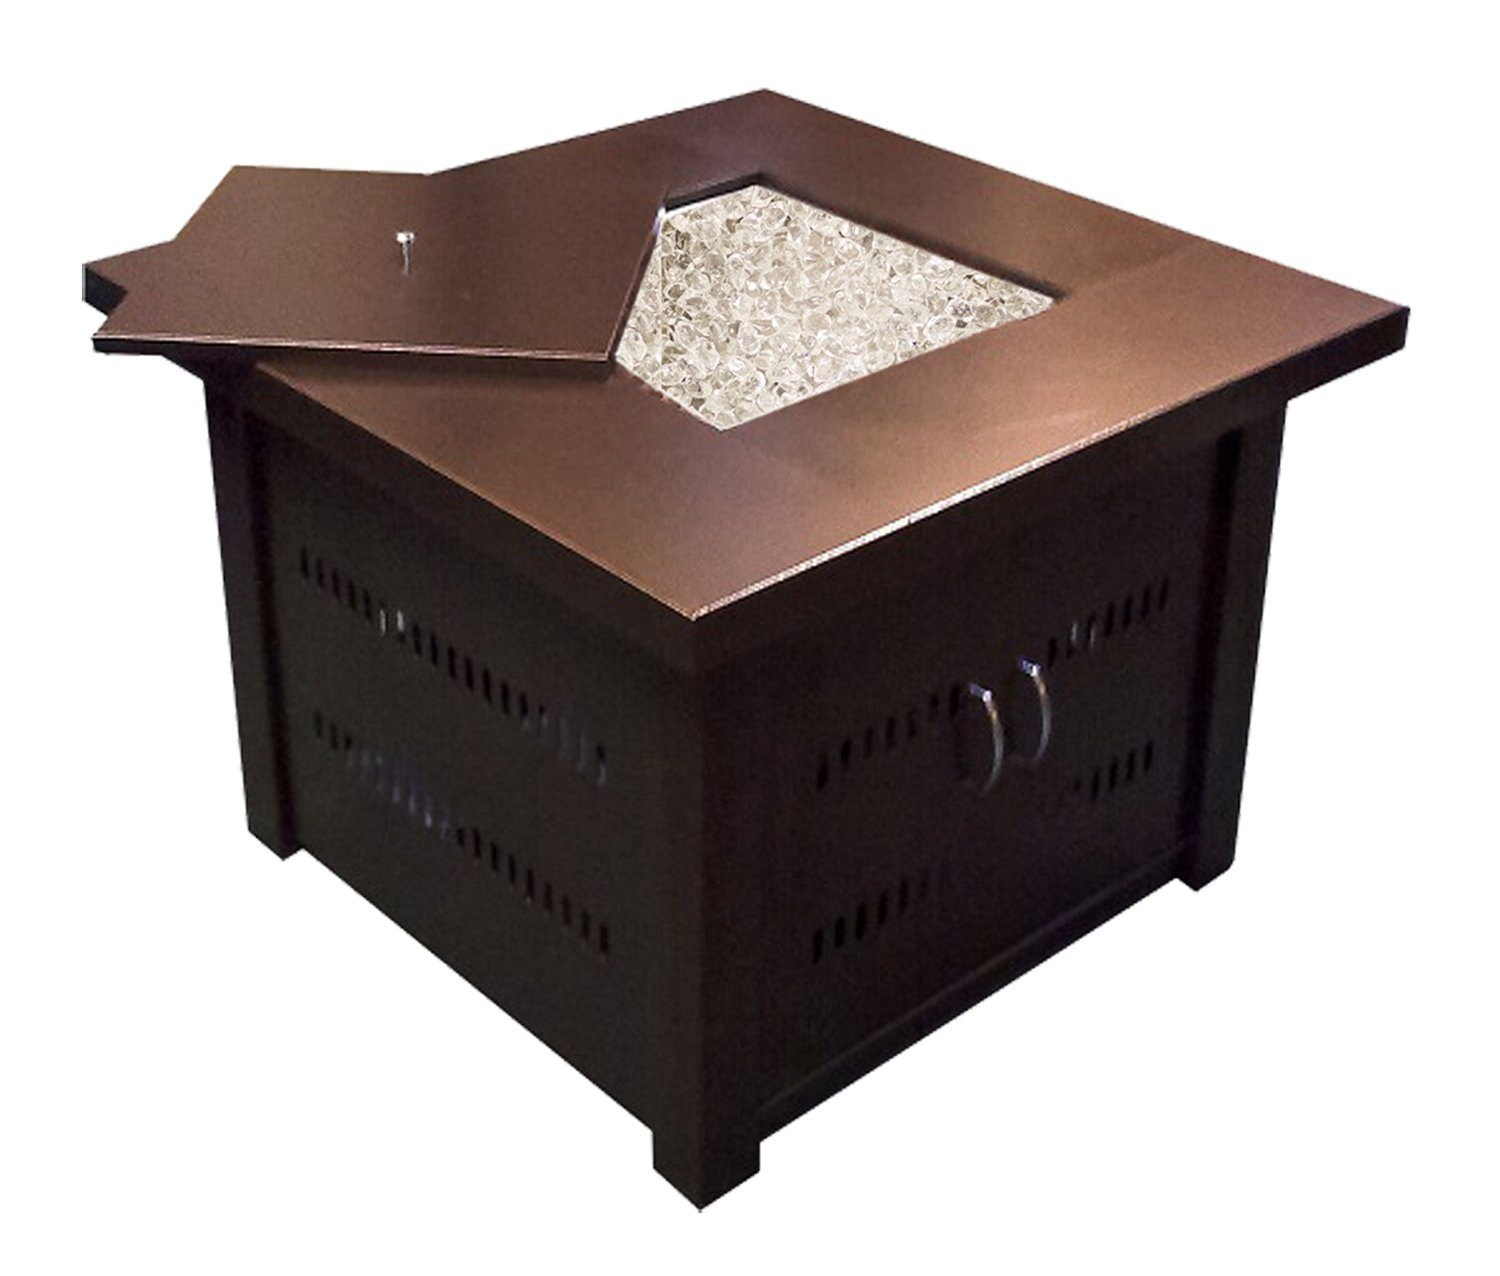 Best AZ Patio Heaters GS-F-PC Propane Fire Pit